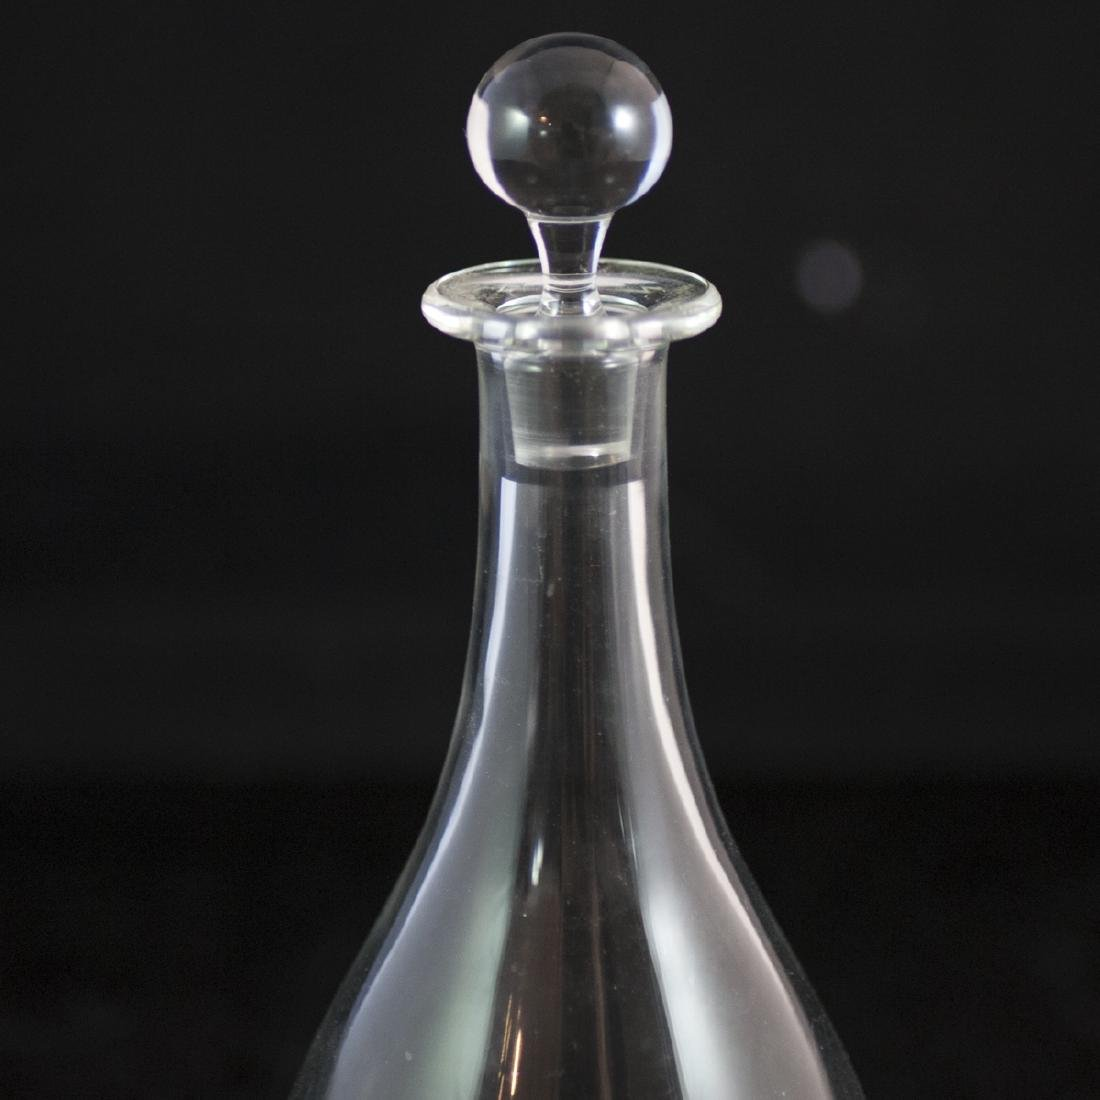 Baccarat Crystal Decanter - 2